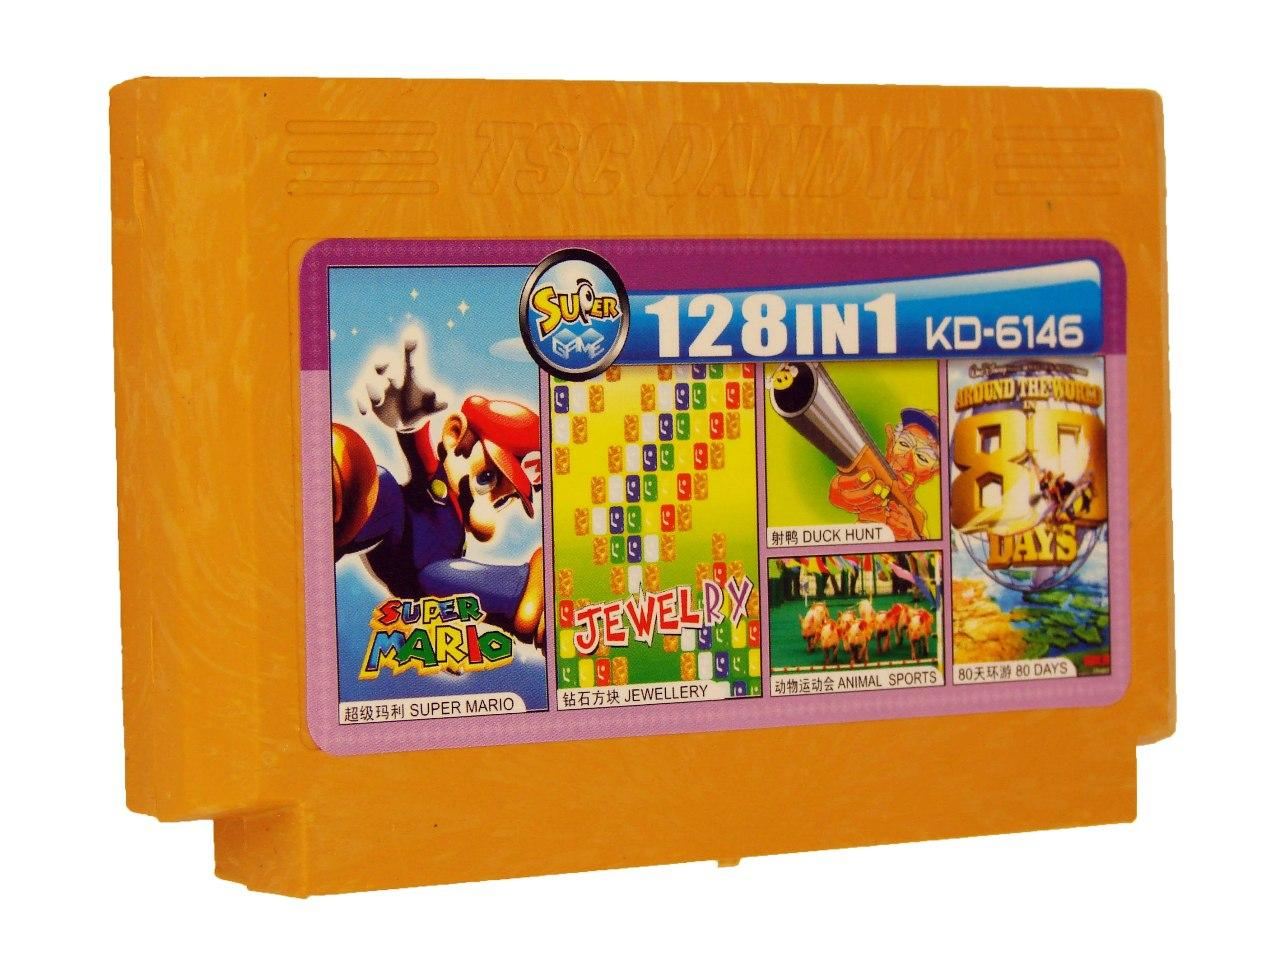 Картридж для Денди KD 6146 128 in 1 (Dendy), Super Mario, Jewellry, Duck Hunt, Animal Sports, Around the Word 80 Day